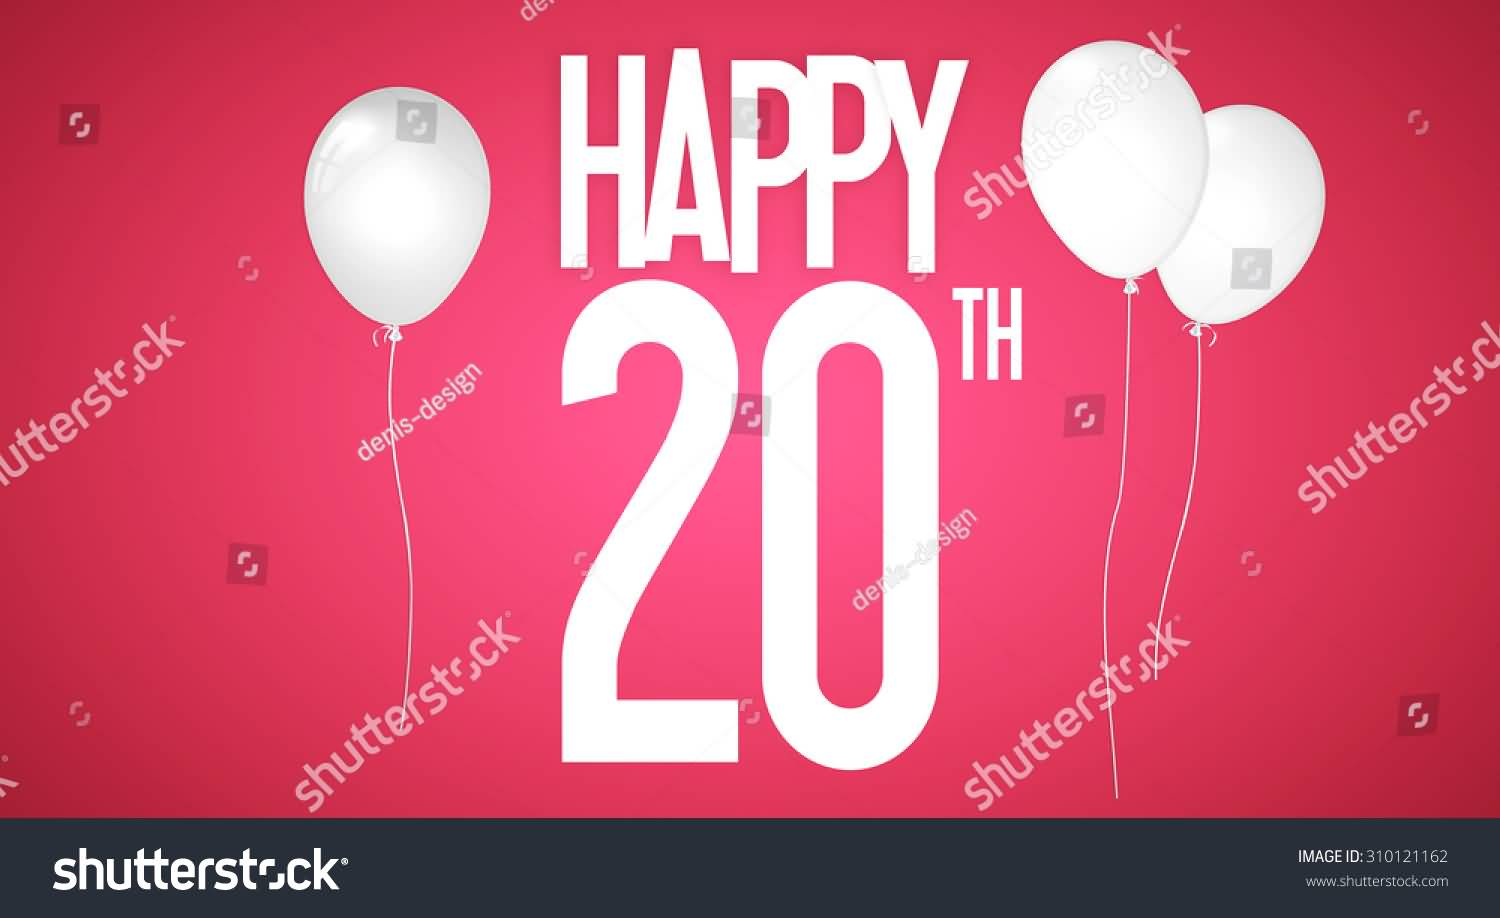 Wonderful Happy 20th Birthday Picture For Sharing